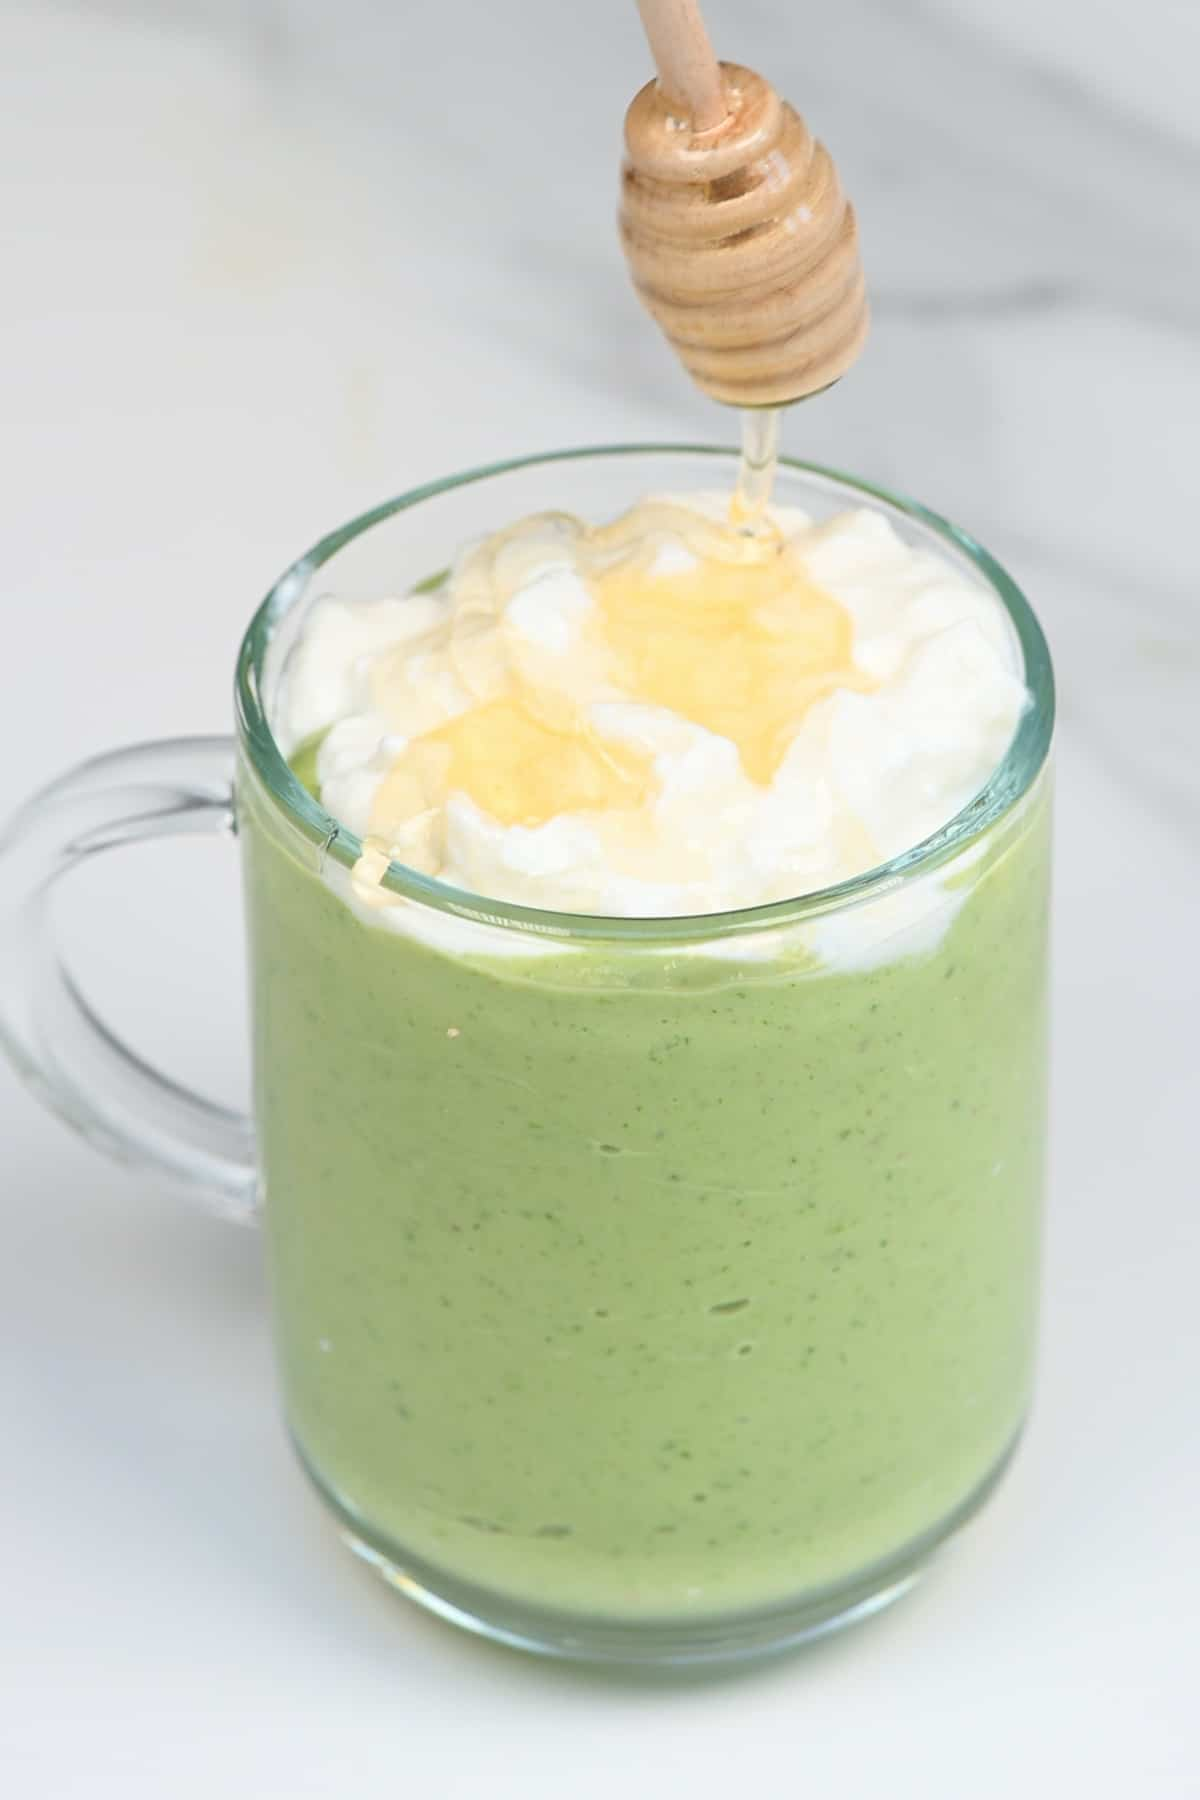 Topping an avocado smoothie with honey